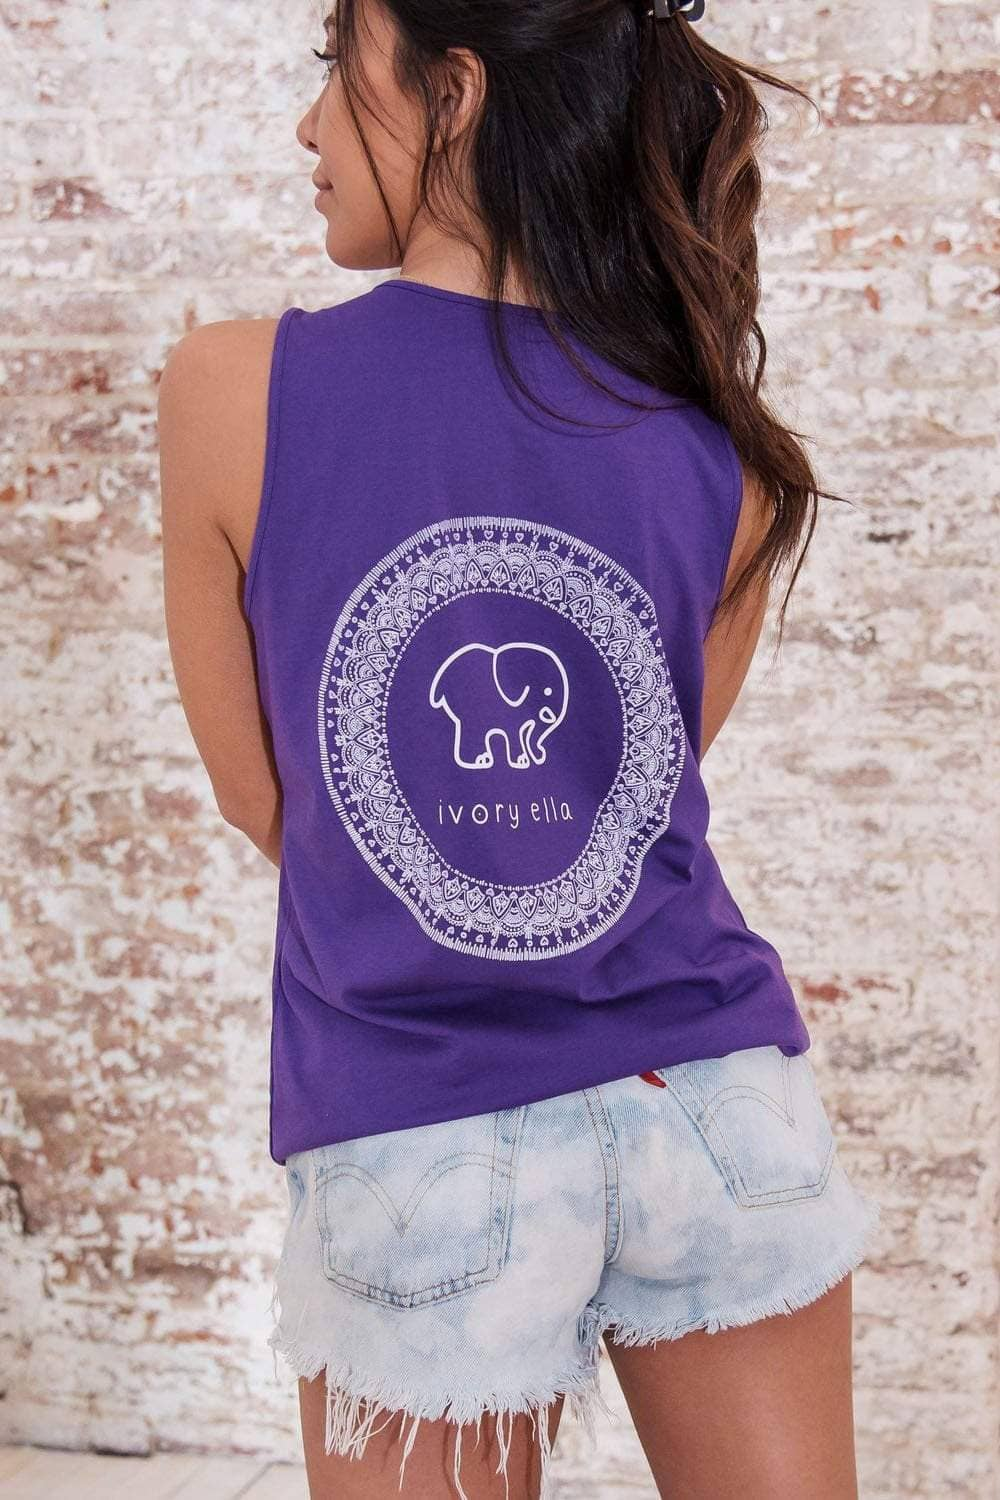 Ivory Ella Women's Tanks XXS Passion Purple Samburu Circle Tank